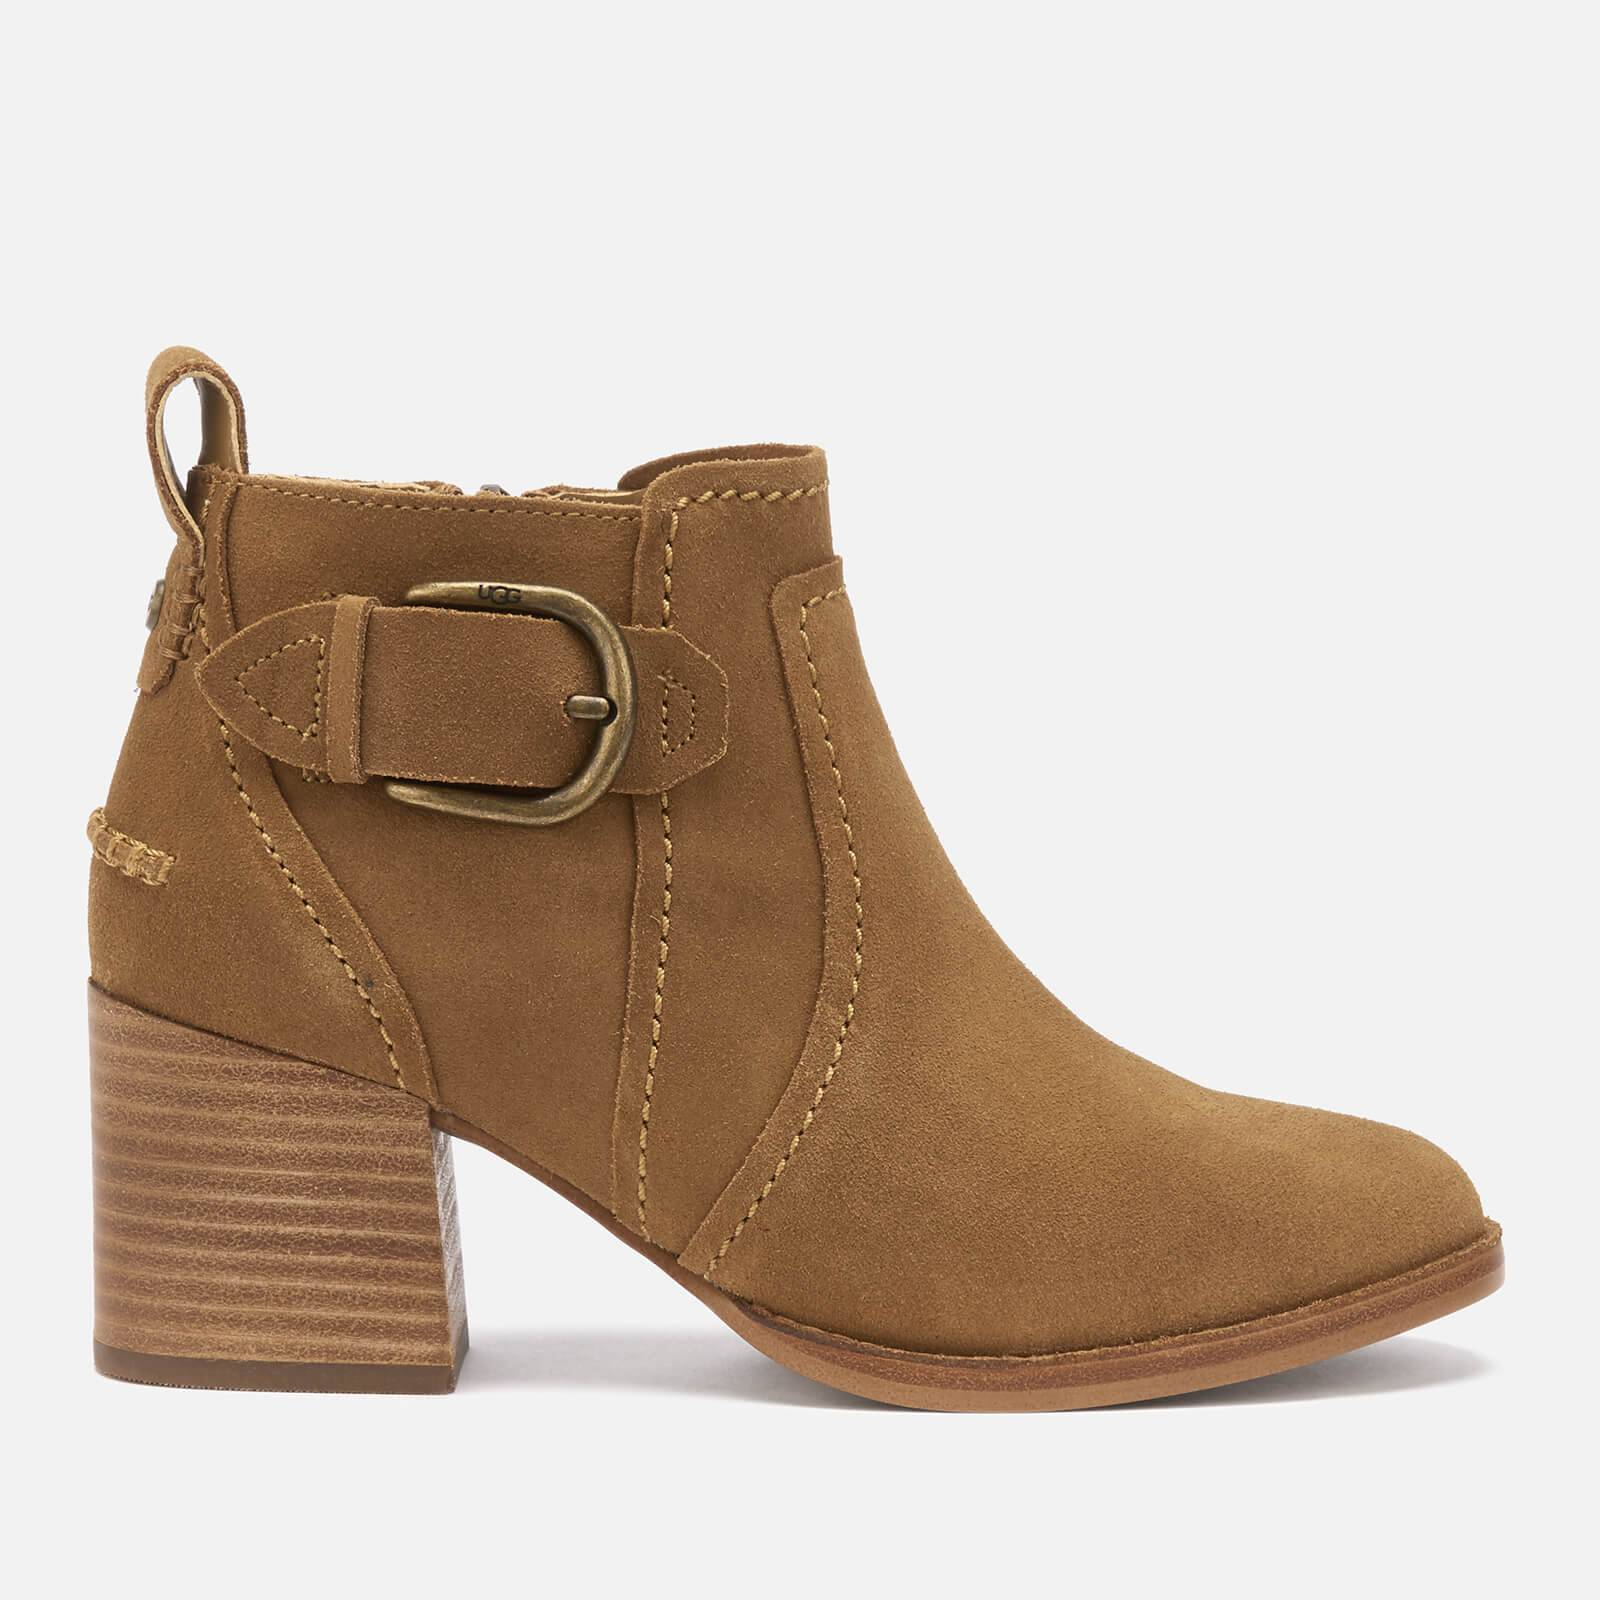 UGG Women's Leahy Buckle Heeled Ankle Boots - Chestnut - UK 8